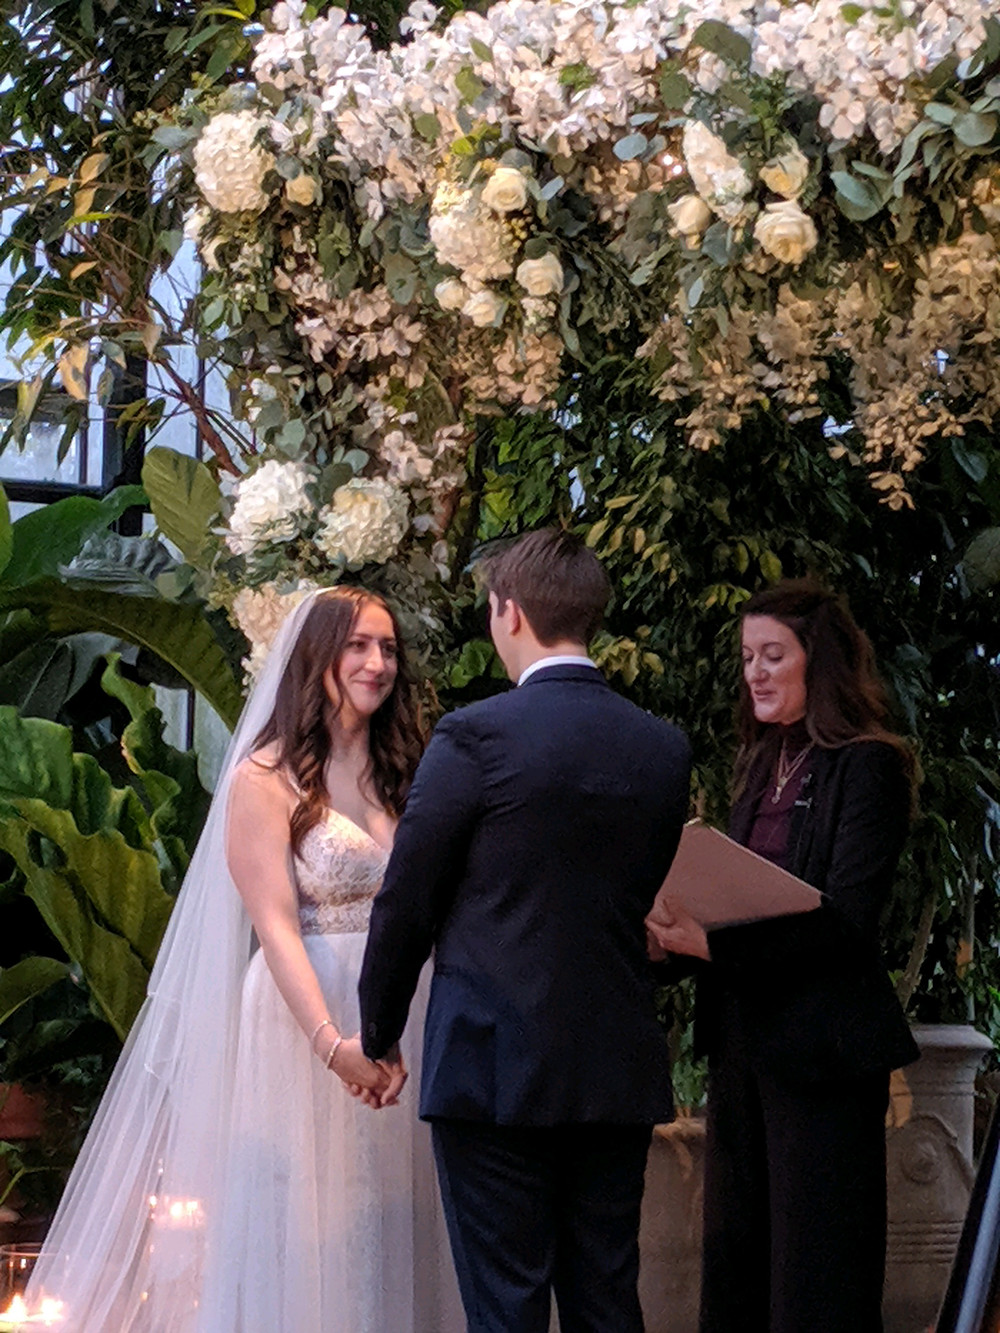 Wedding at Planterra Conservatory, officiant Nichoe Bertucci, music by Rondo String Quartet. www.RondoStringQuartet.com